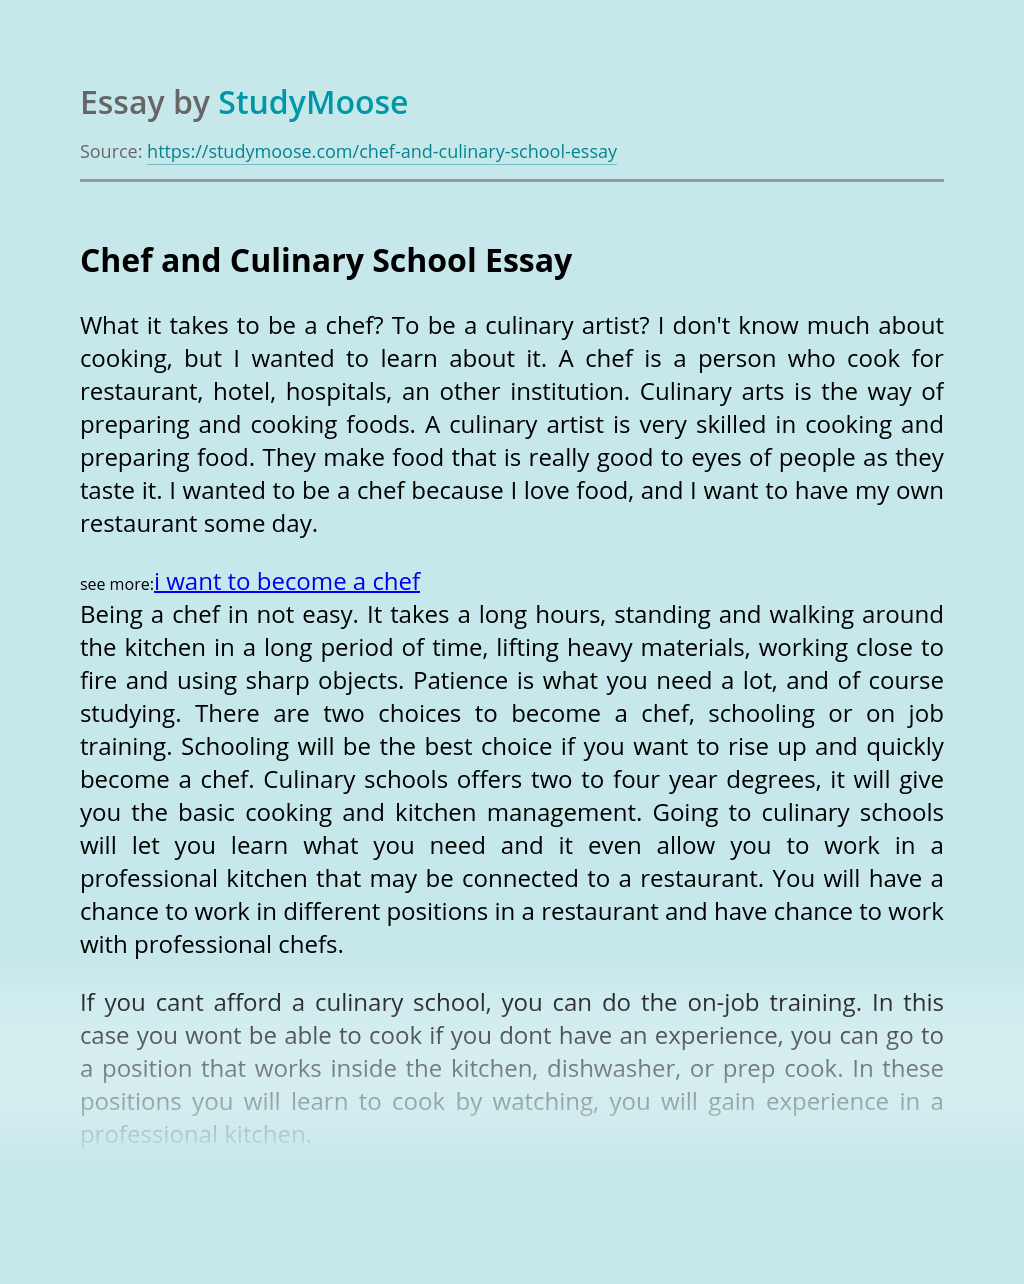 Chef and Culinary School